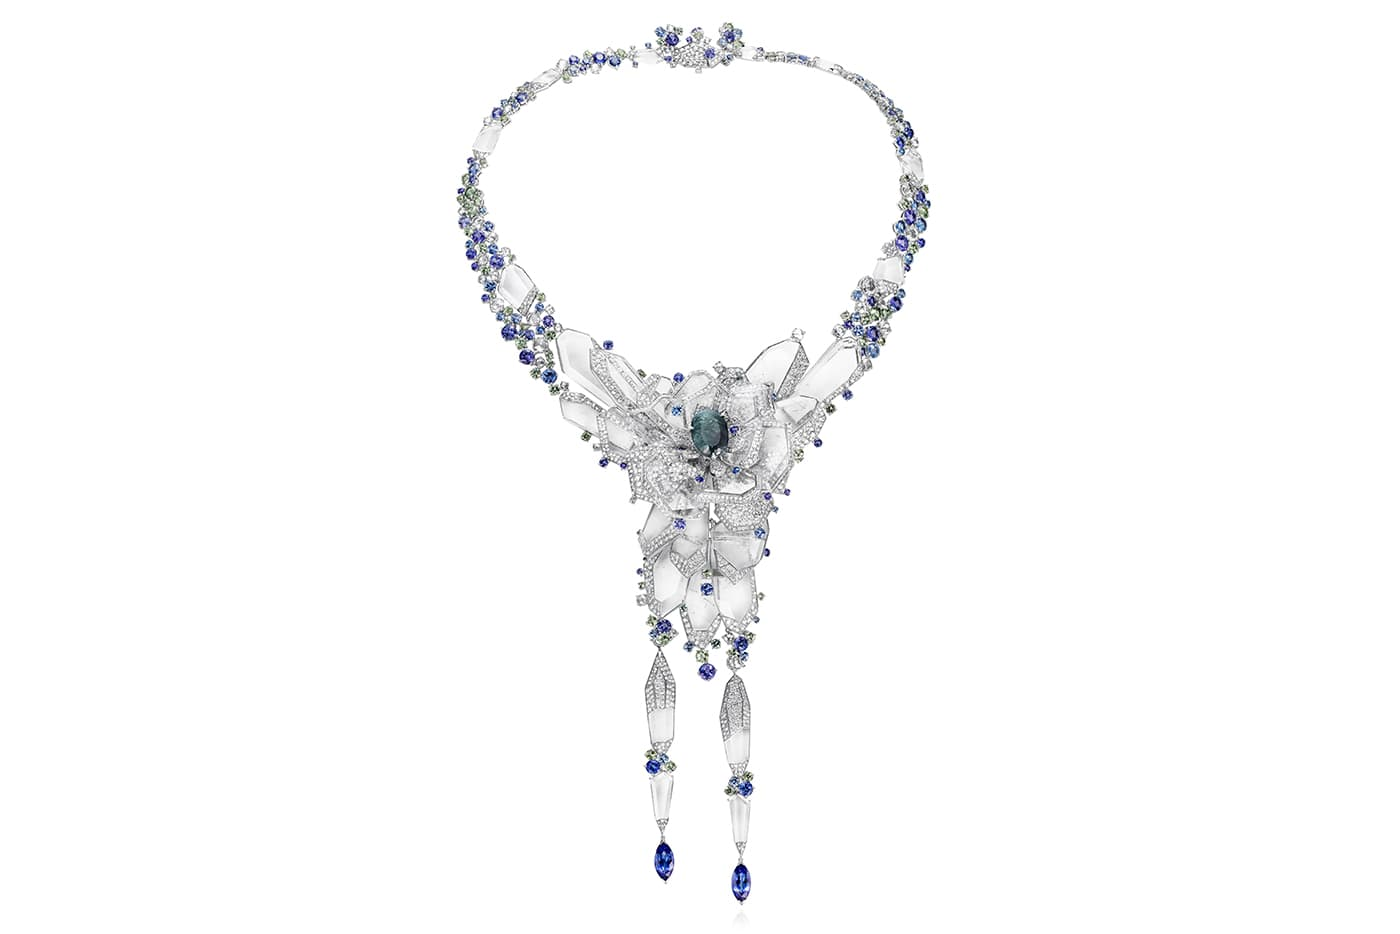 Rubeus 'Eternal' transformable necklace with oval 10.30ct alexandrite, diamonds, sapphires, tanzanites and rock crystal in titanium